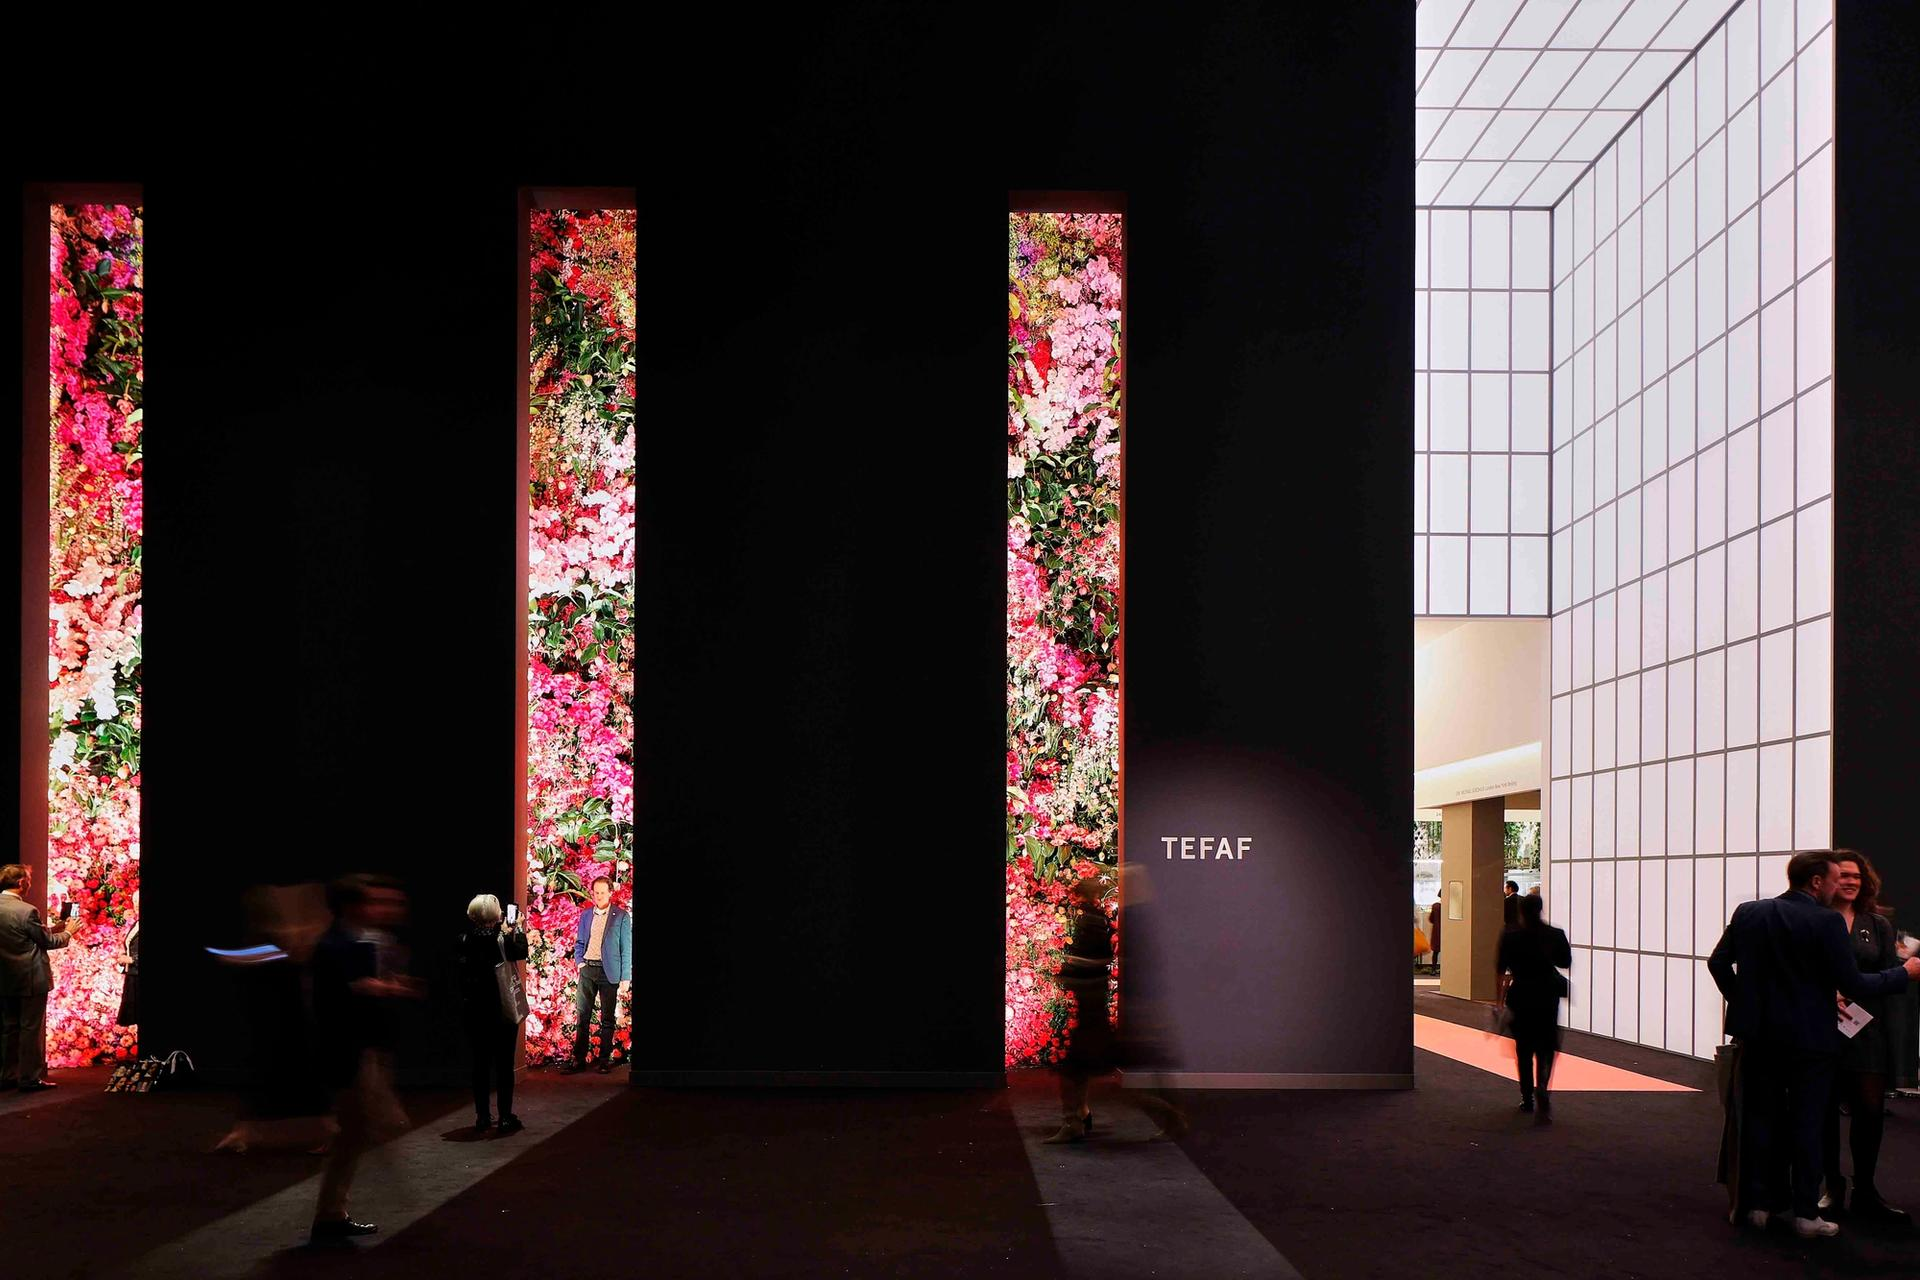 This year's Tefaf Maastricht drew 4,000 visitors for yesterday's VVIP day, 29% down on last year—but there was still a queue to take a selfie with the famous flower wall Courtesy of Tefaf